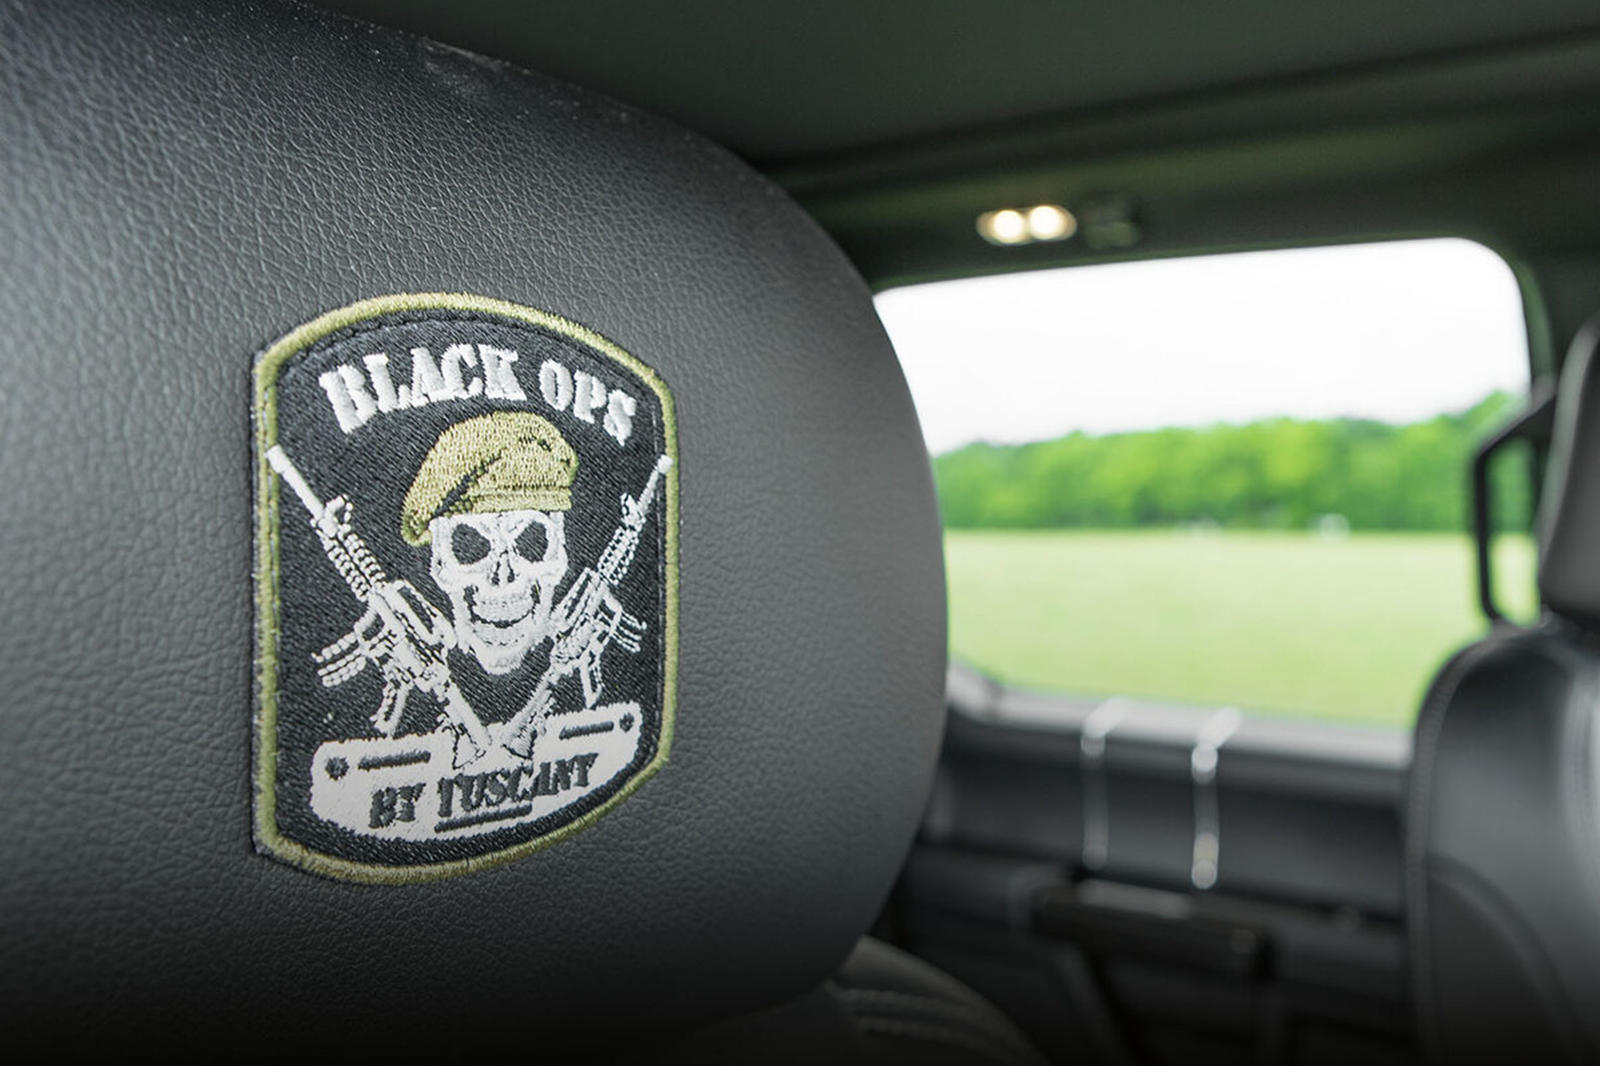 Ford-F-150-Black-Ops-by-Tuscany-Motors-9